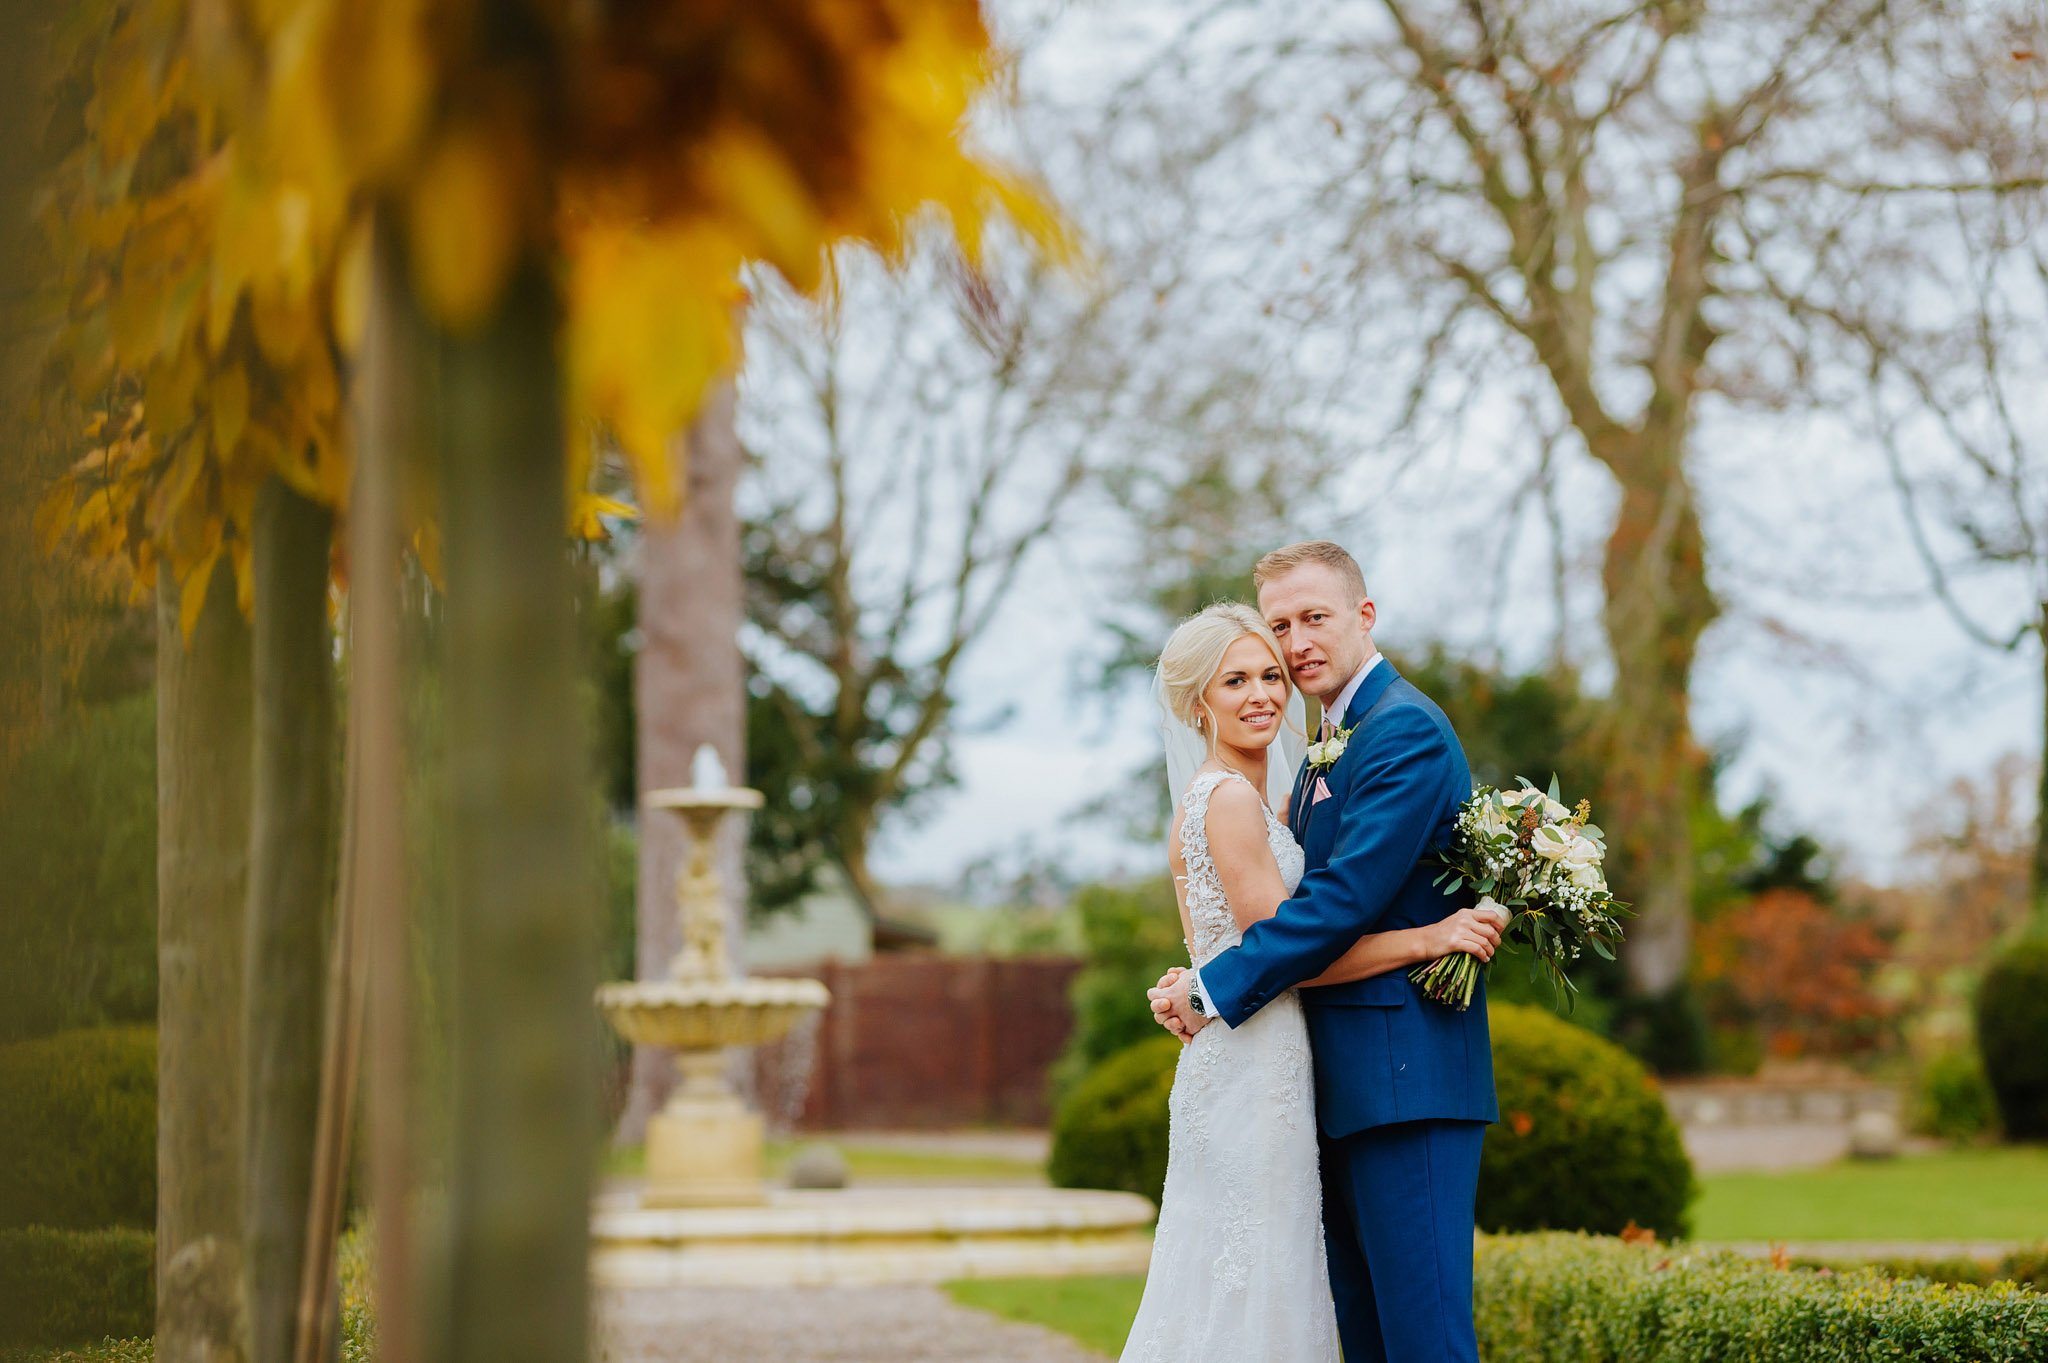 Lemore Manor wedding, Herefordshire - West Midlands | Sadie + Ken 69